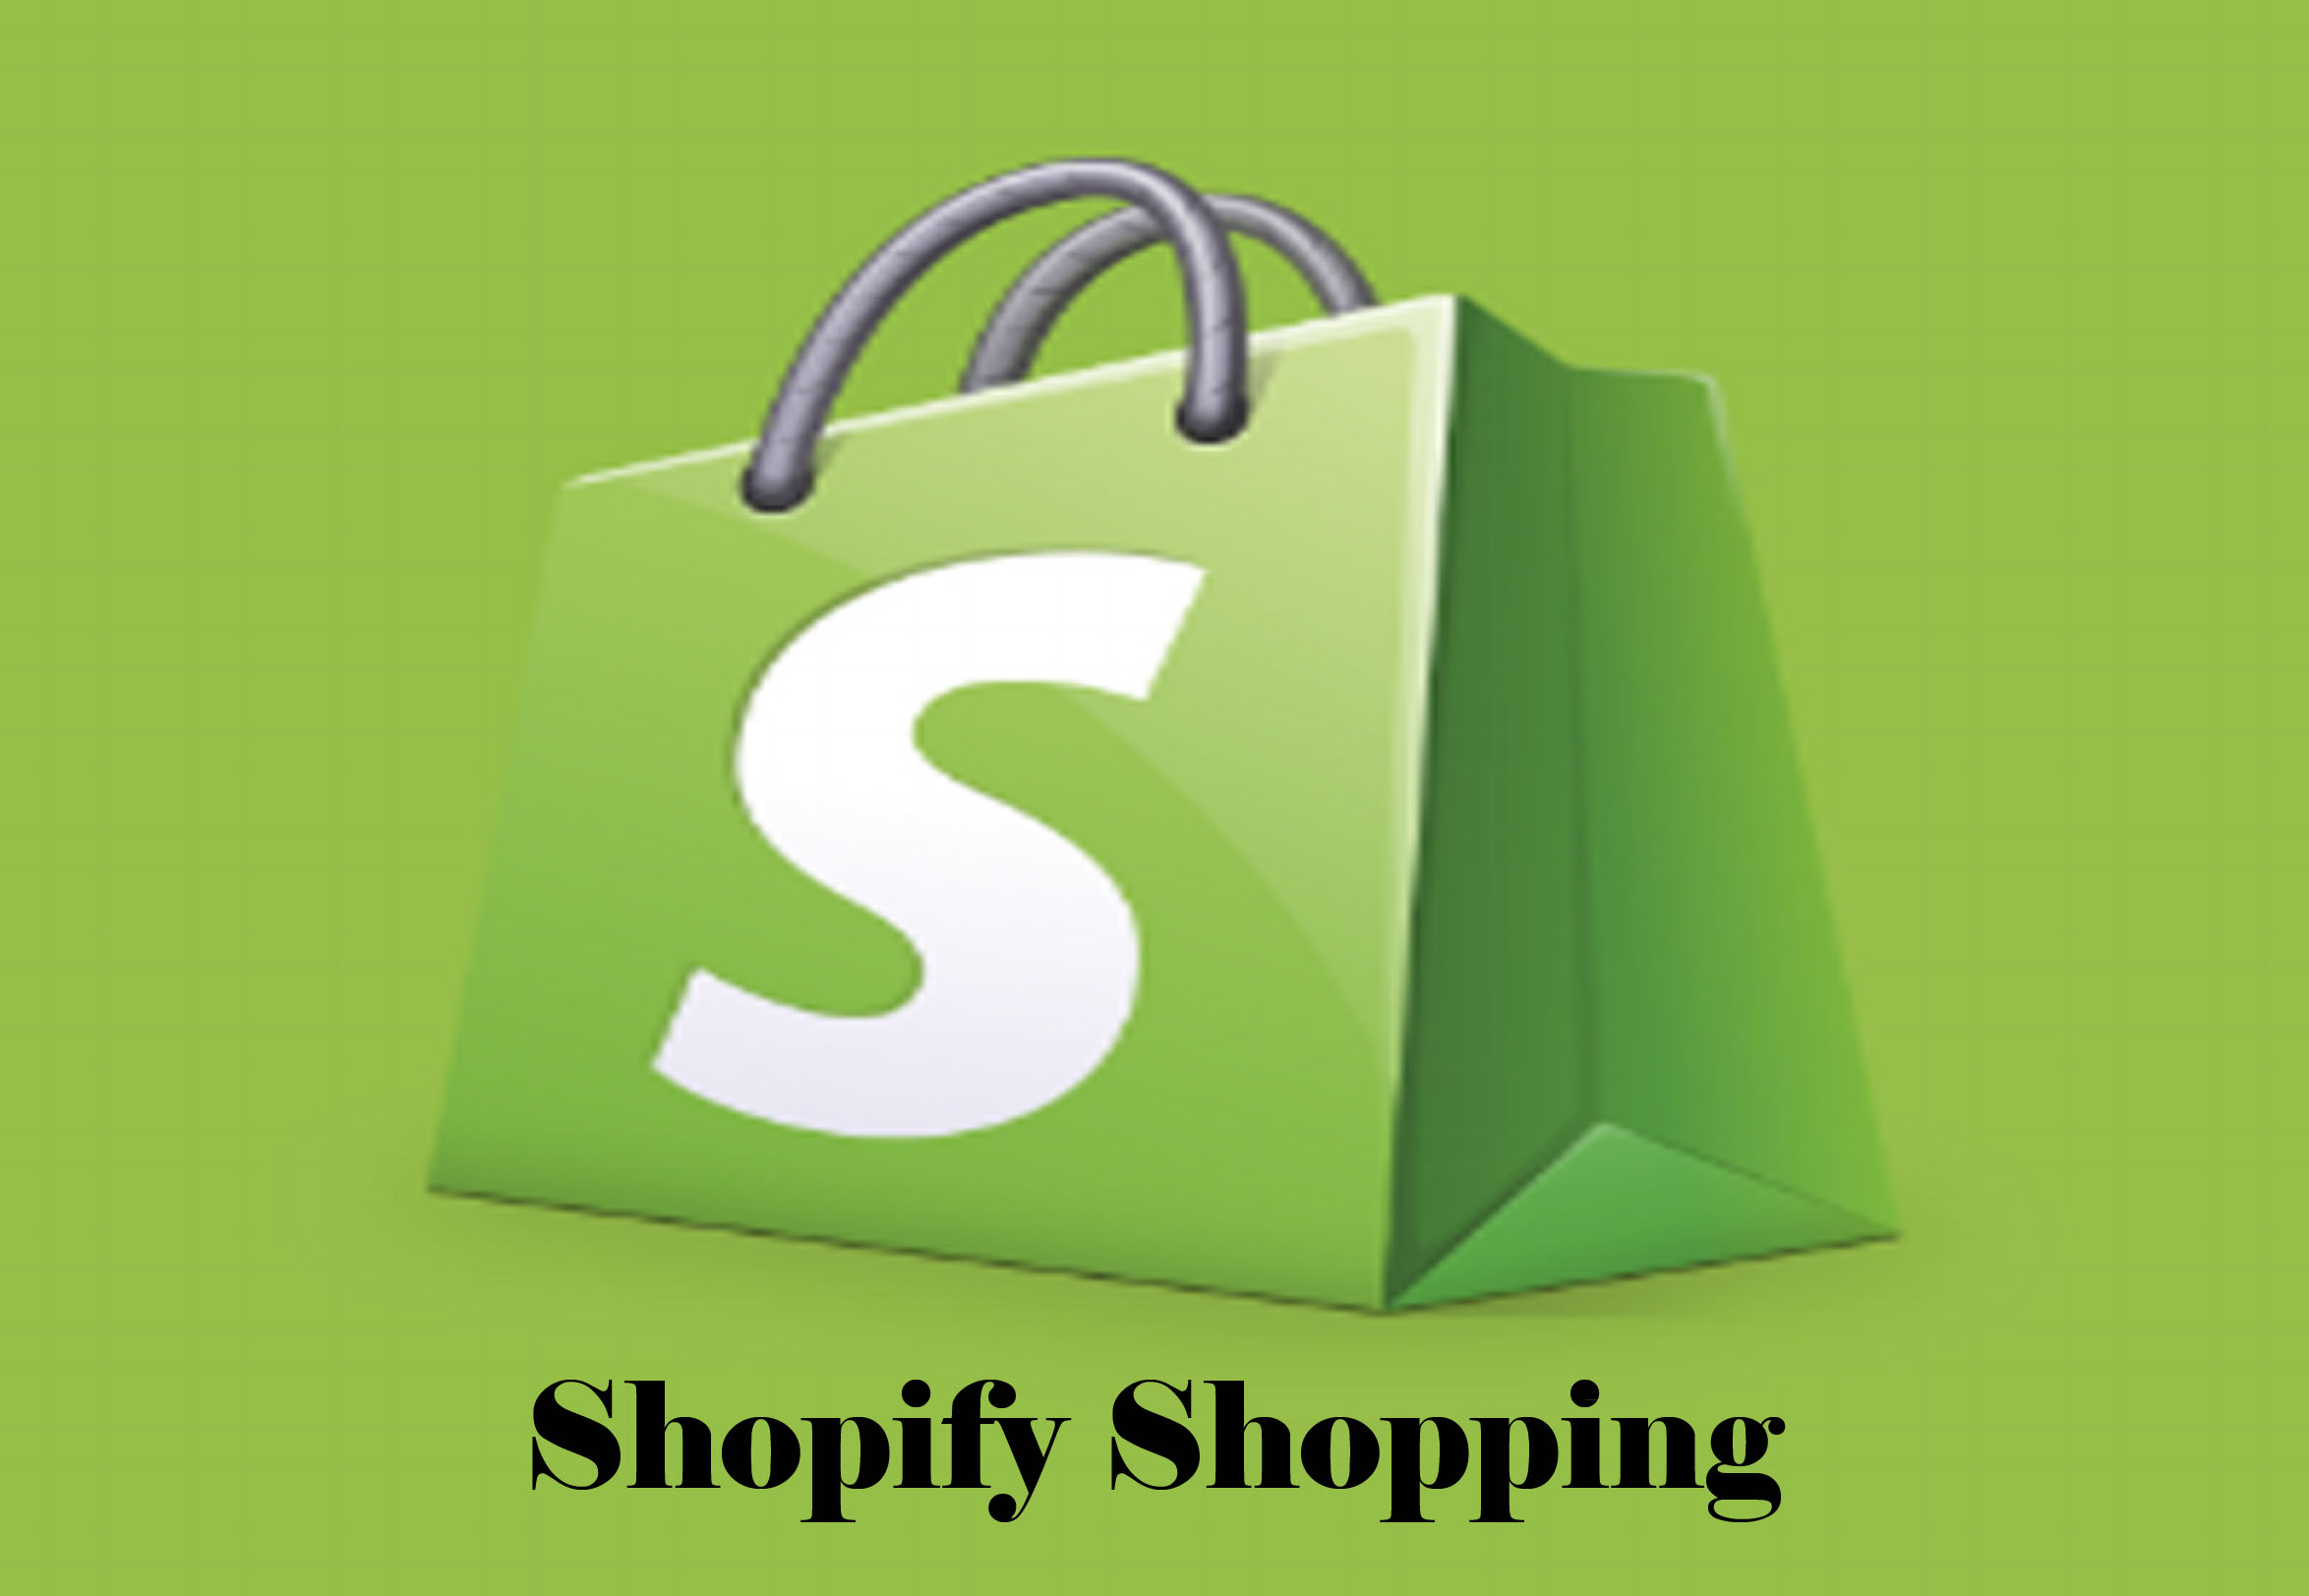 Shopify Shopping – How to Shop on Shopify Marketplace